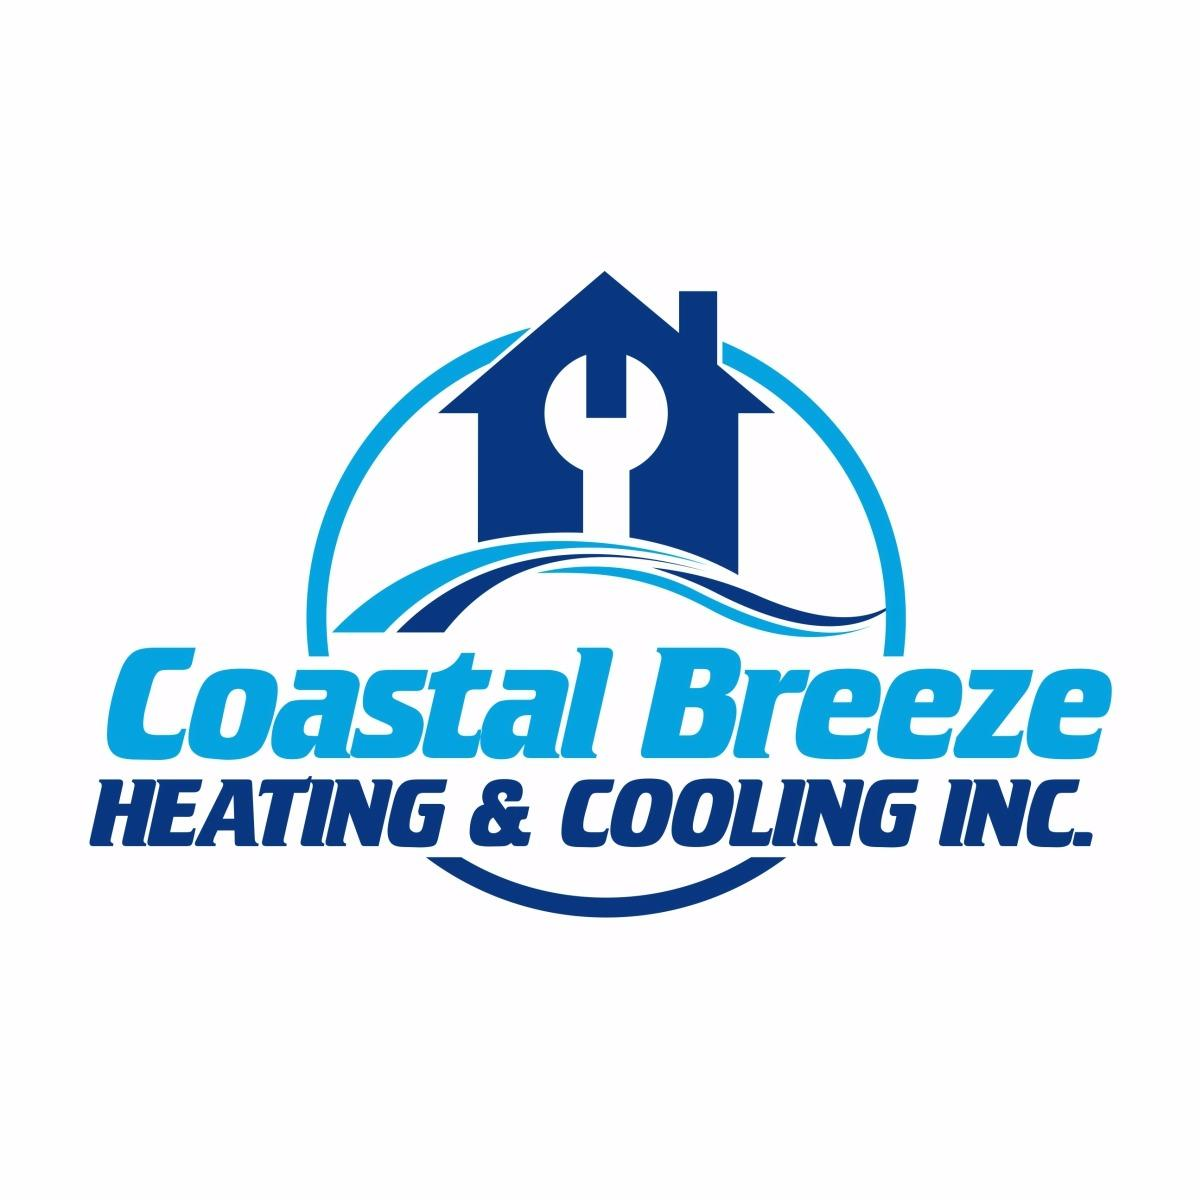 Coastal Breeze Heating and Cooling Inc image 10